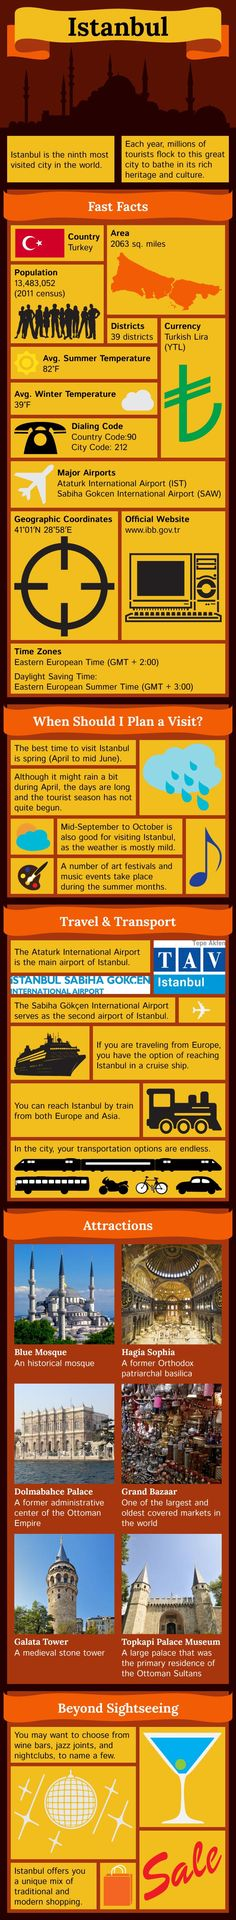 Istanbul Infographic, Travel Infographic on Istanbul – Turkey Travel Info, Travel Guides, Travel Tips, Budget Travel, Places To Travel, Places To Visit, Travel Destinations, Istanbul Travel, Visit Istanbul